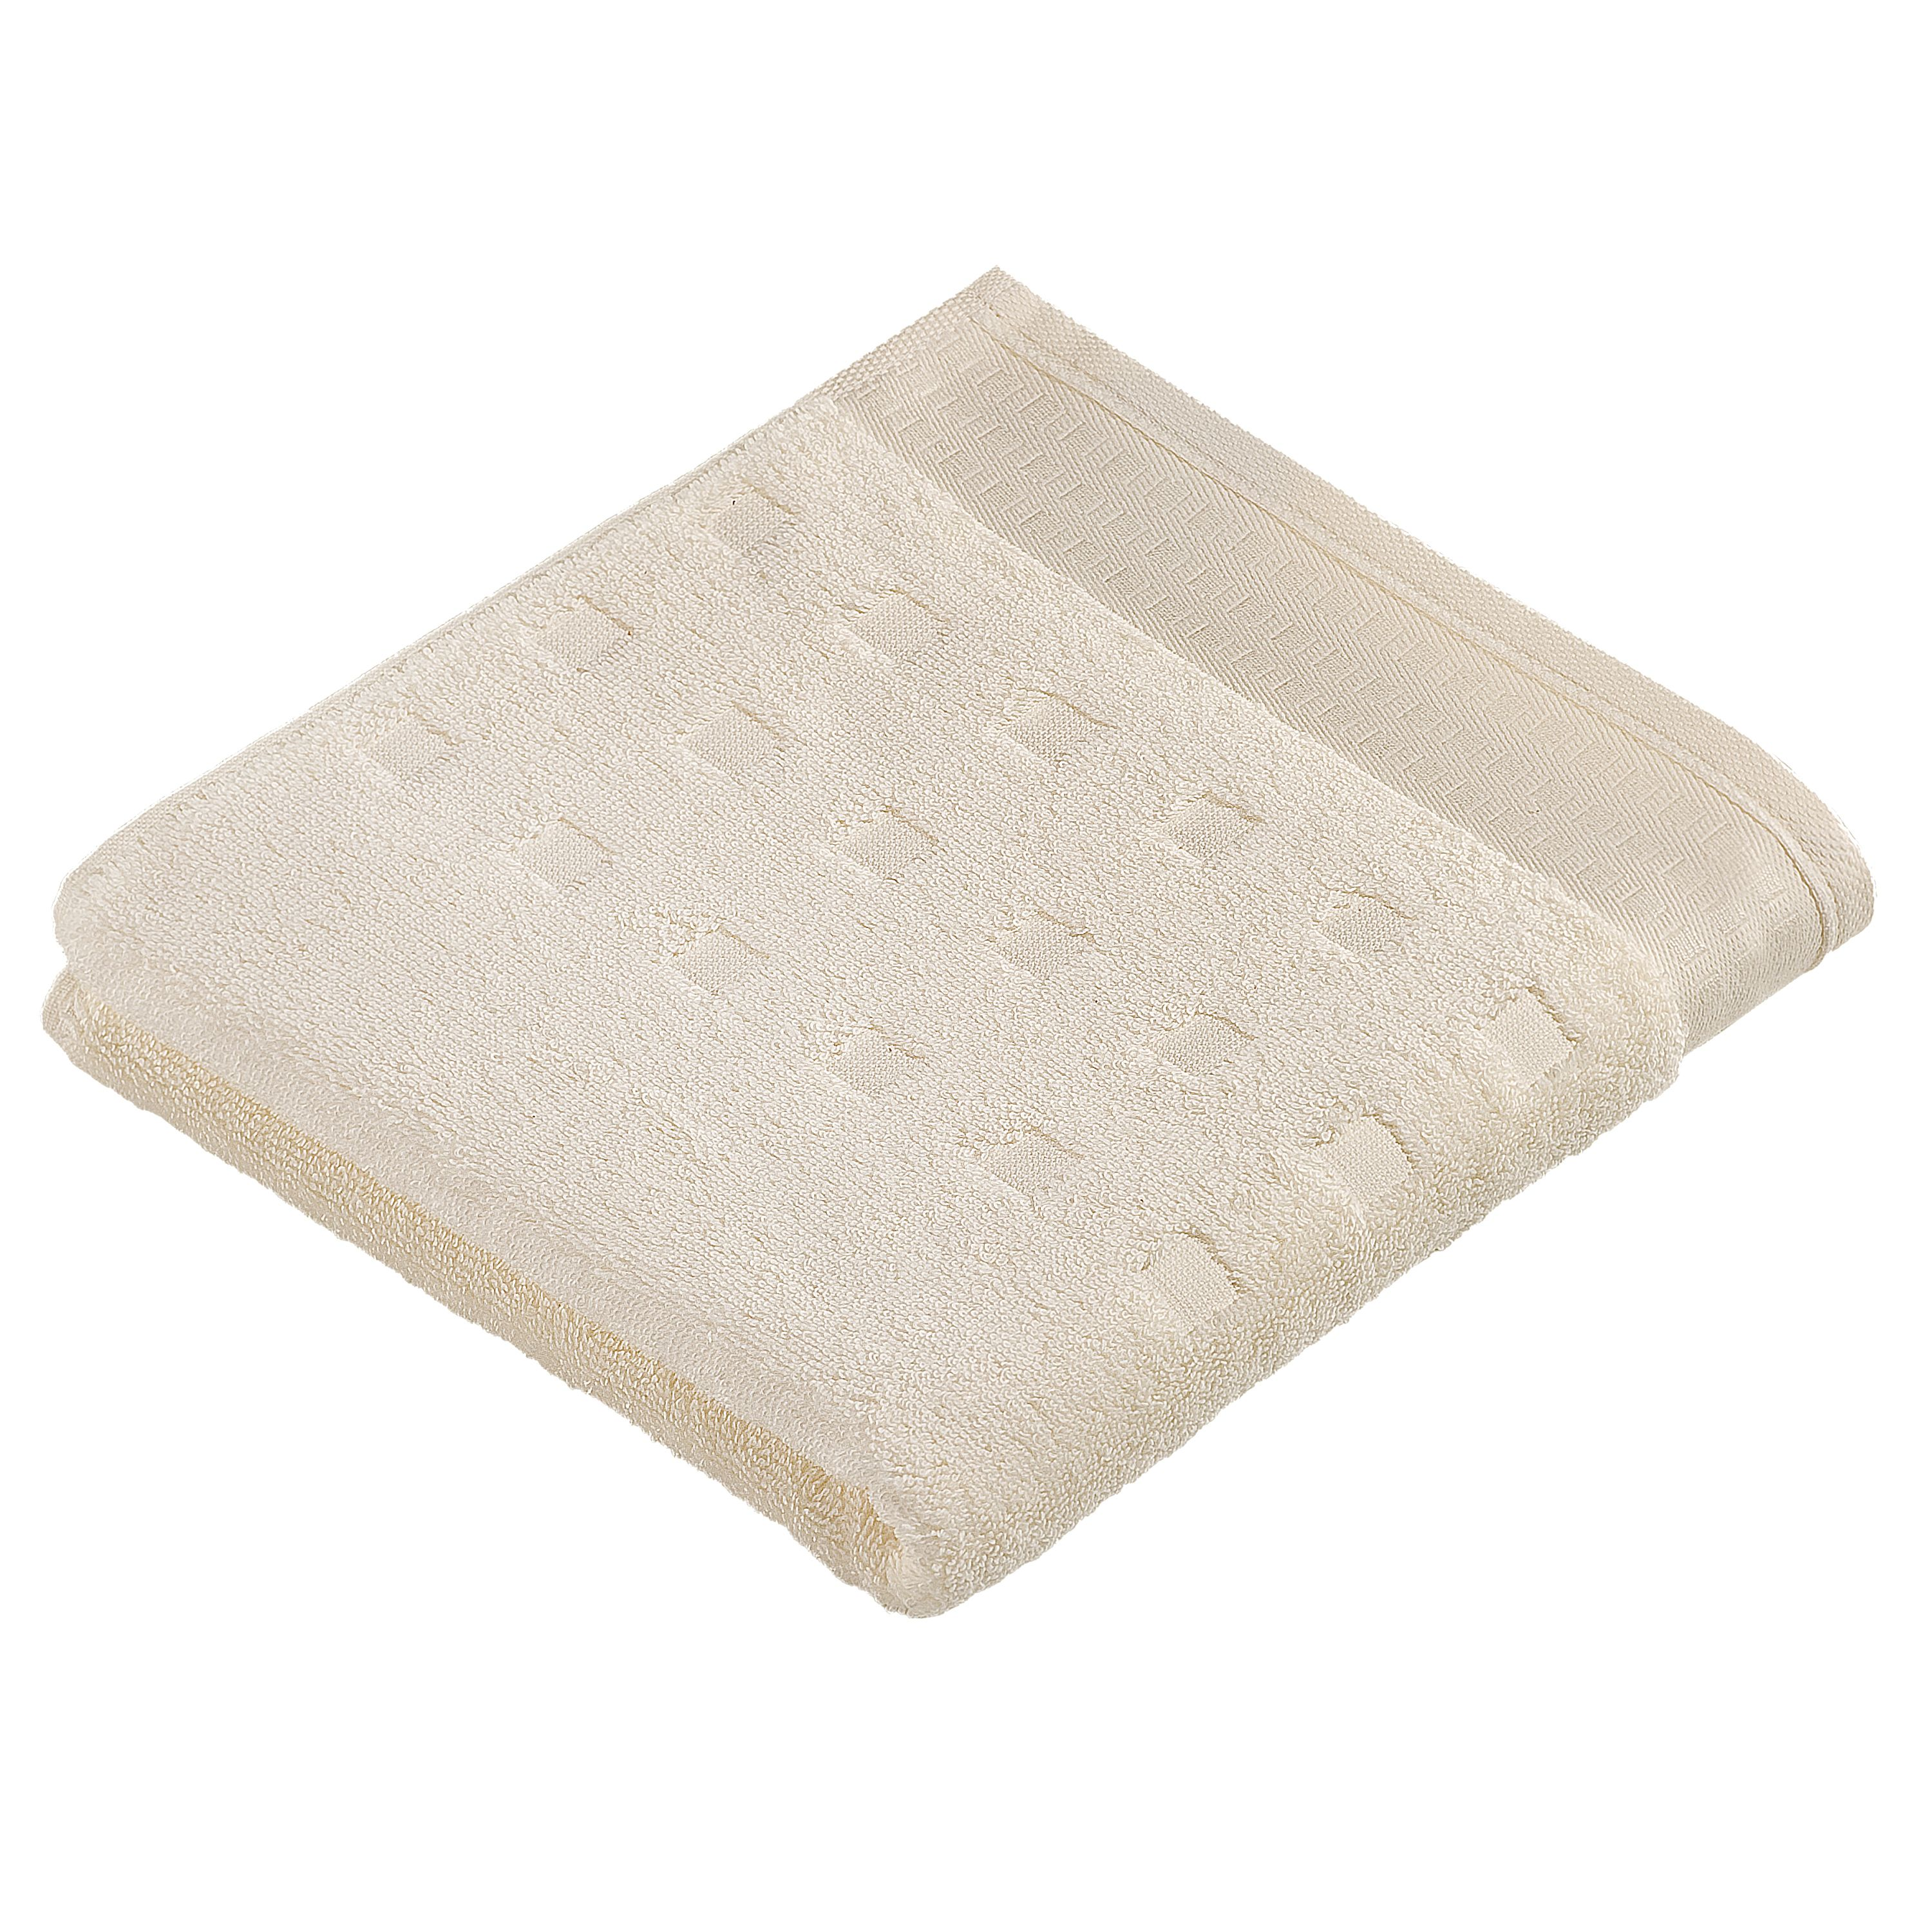 Country style  towels in ivory